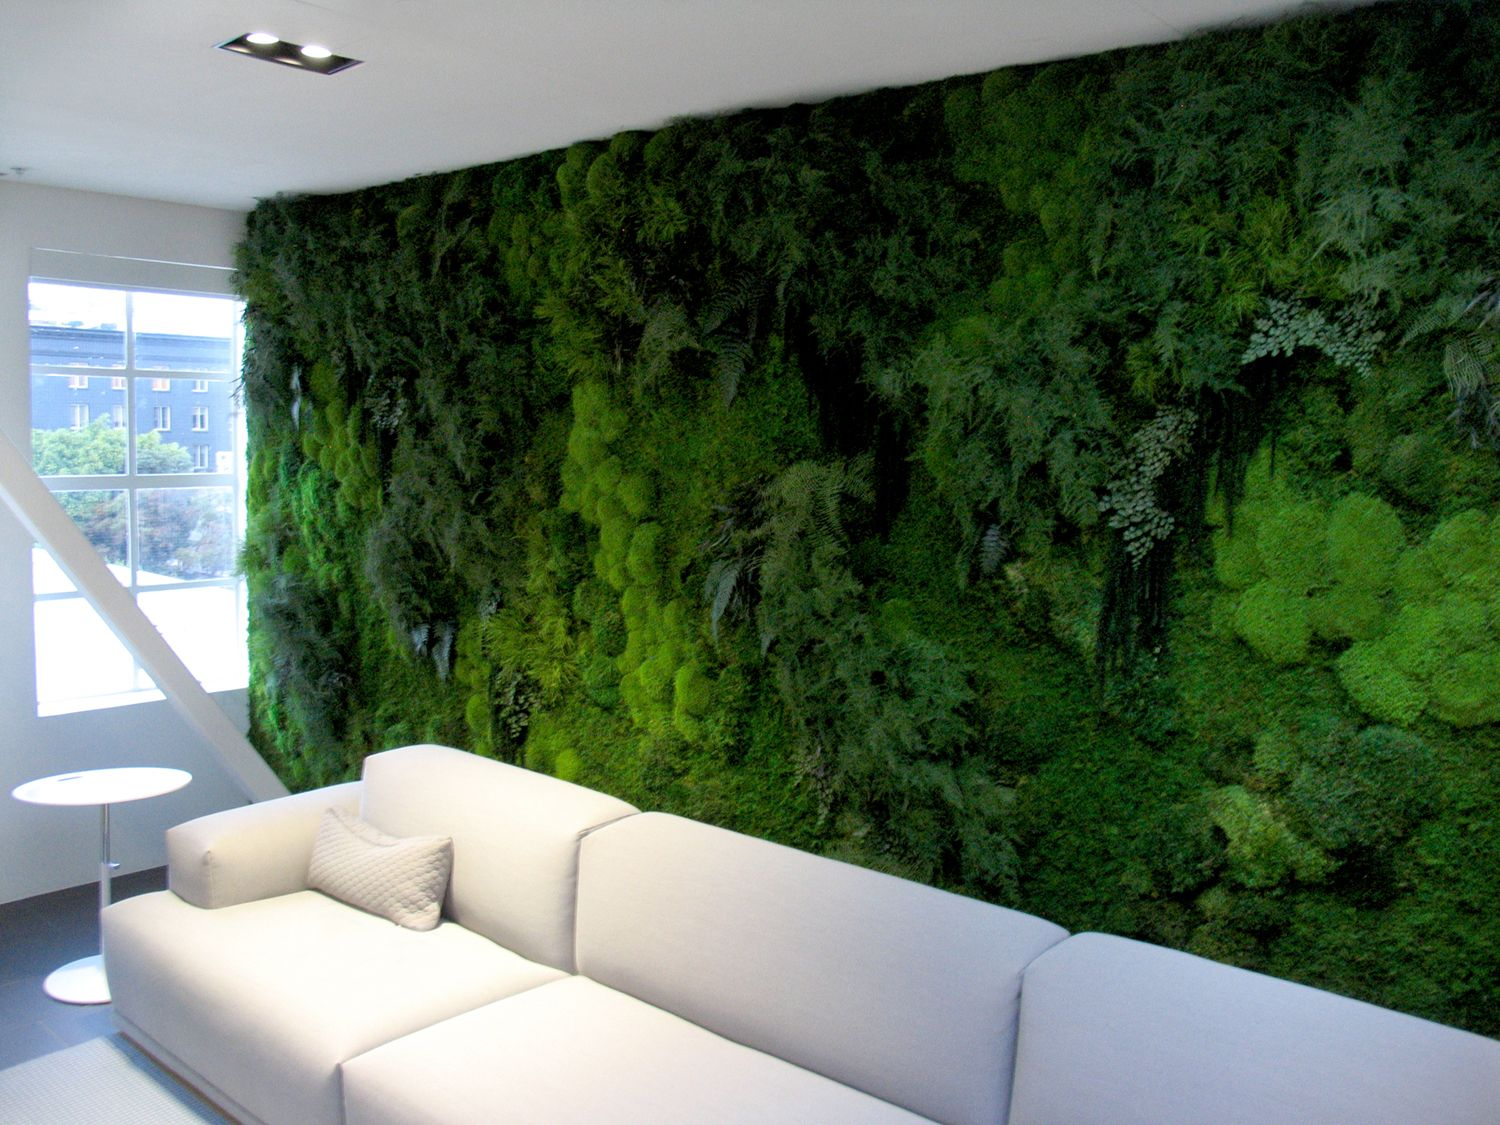 cc go sf 01 modern furniture is complimented by our lush plant wall